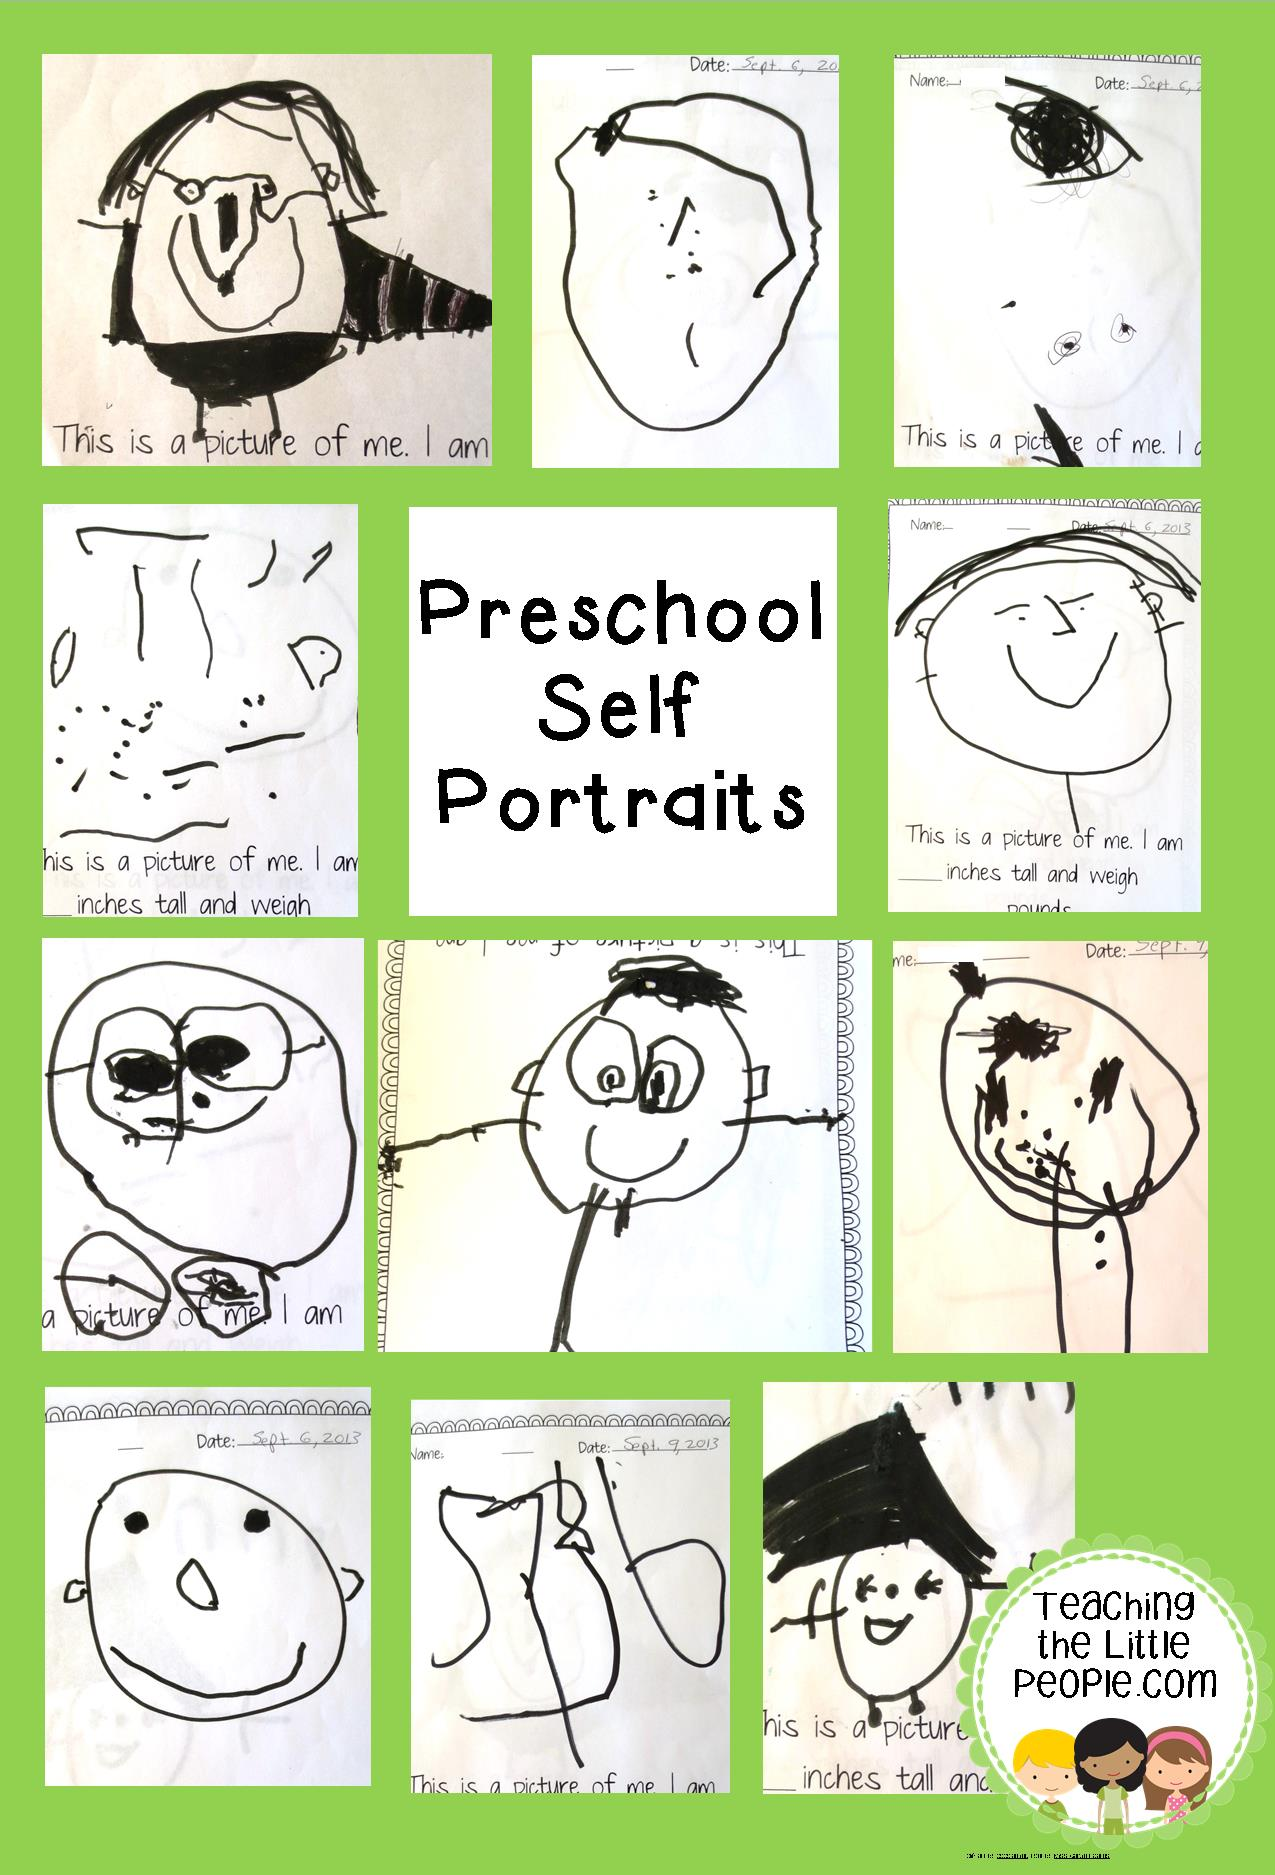 Self Portraits In The Preschool Teaching The Little People